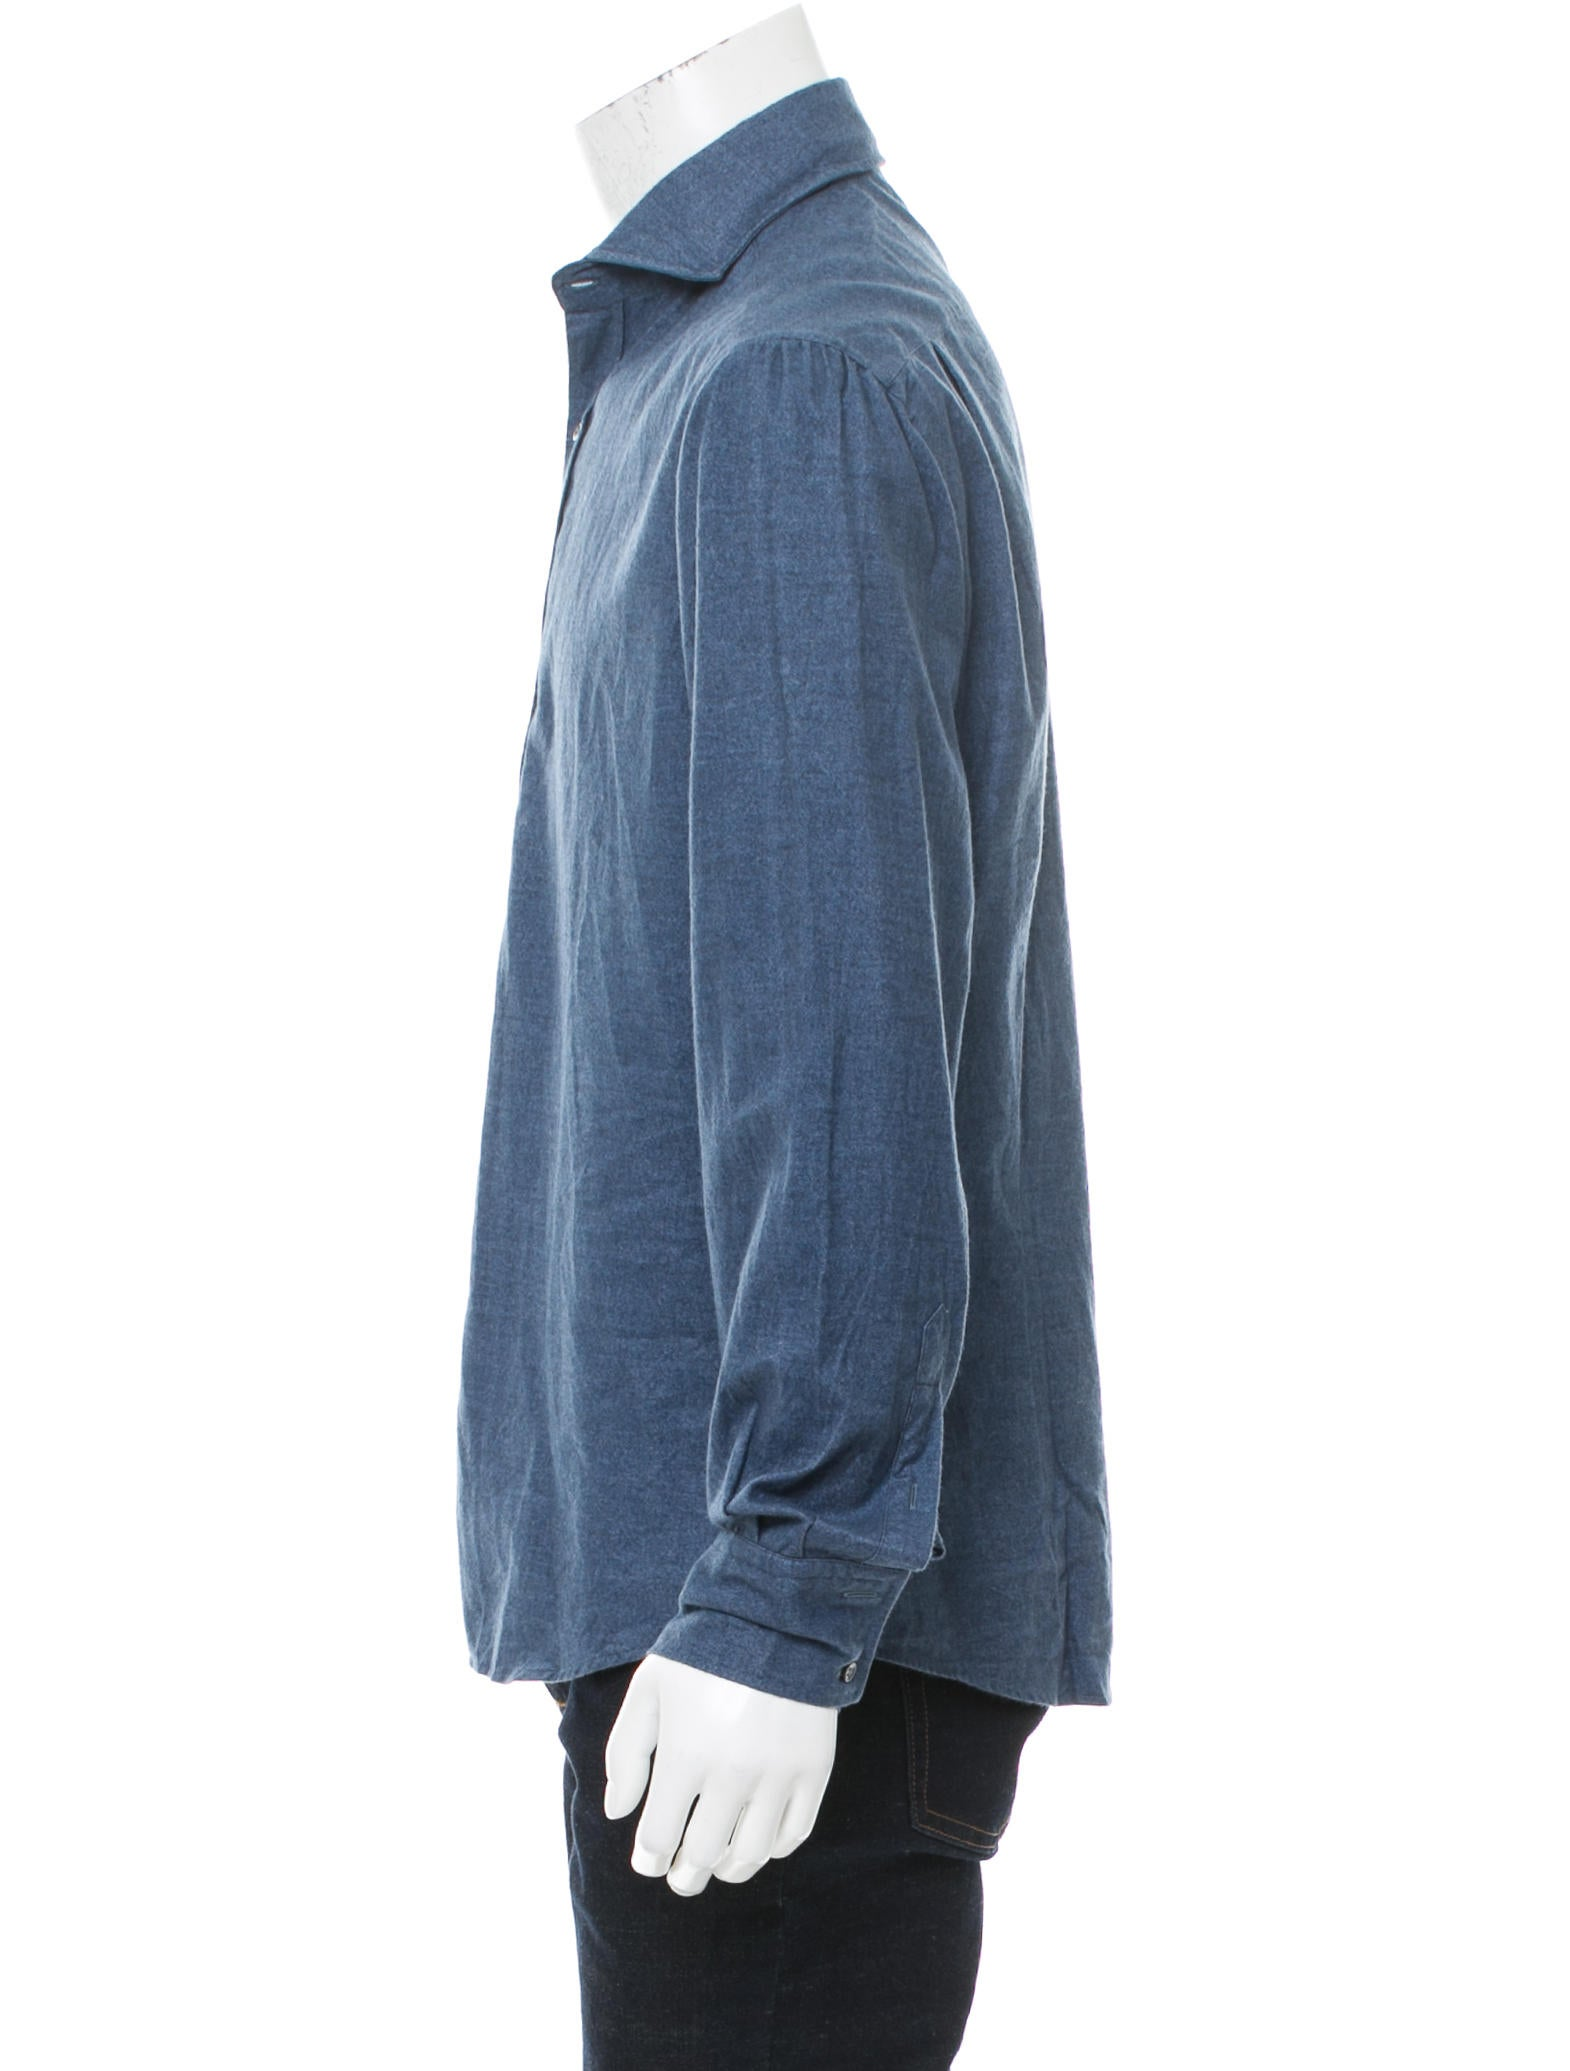 Michael bastian woven button up shirt w tags clothing Woven t shirt tags